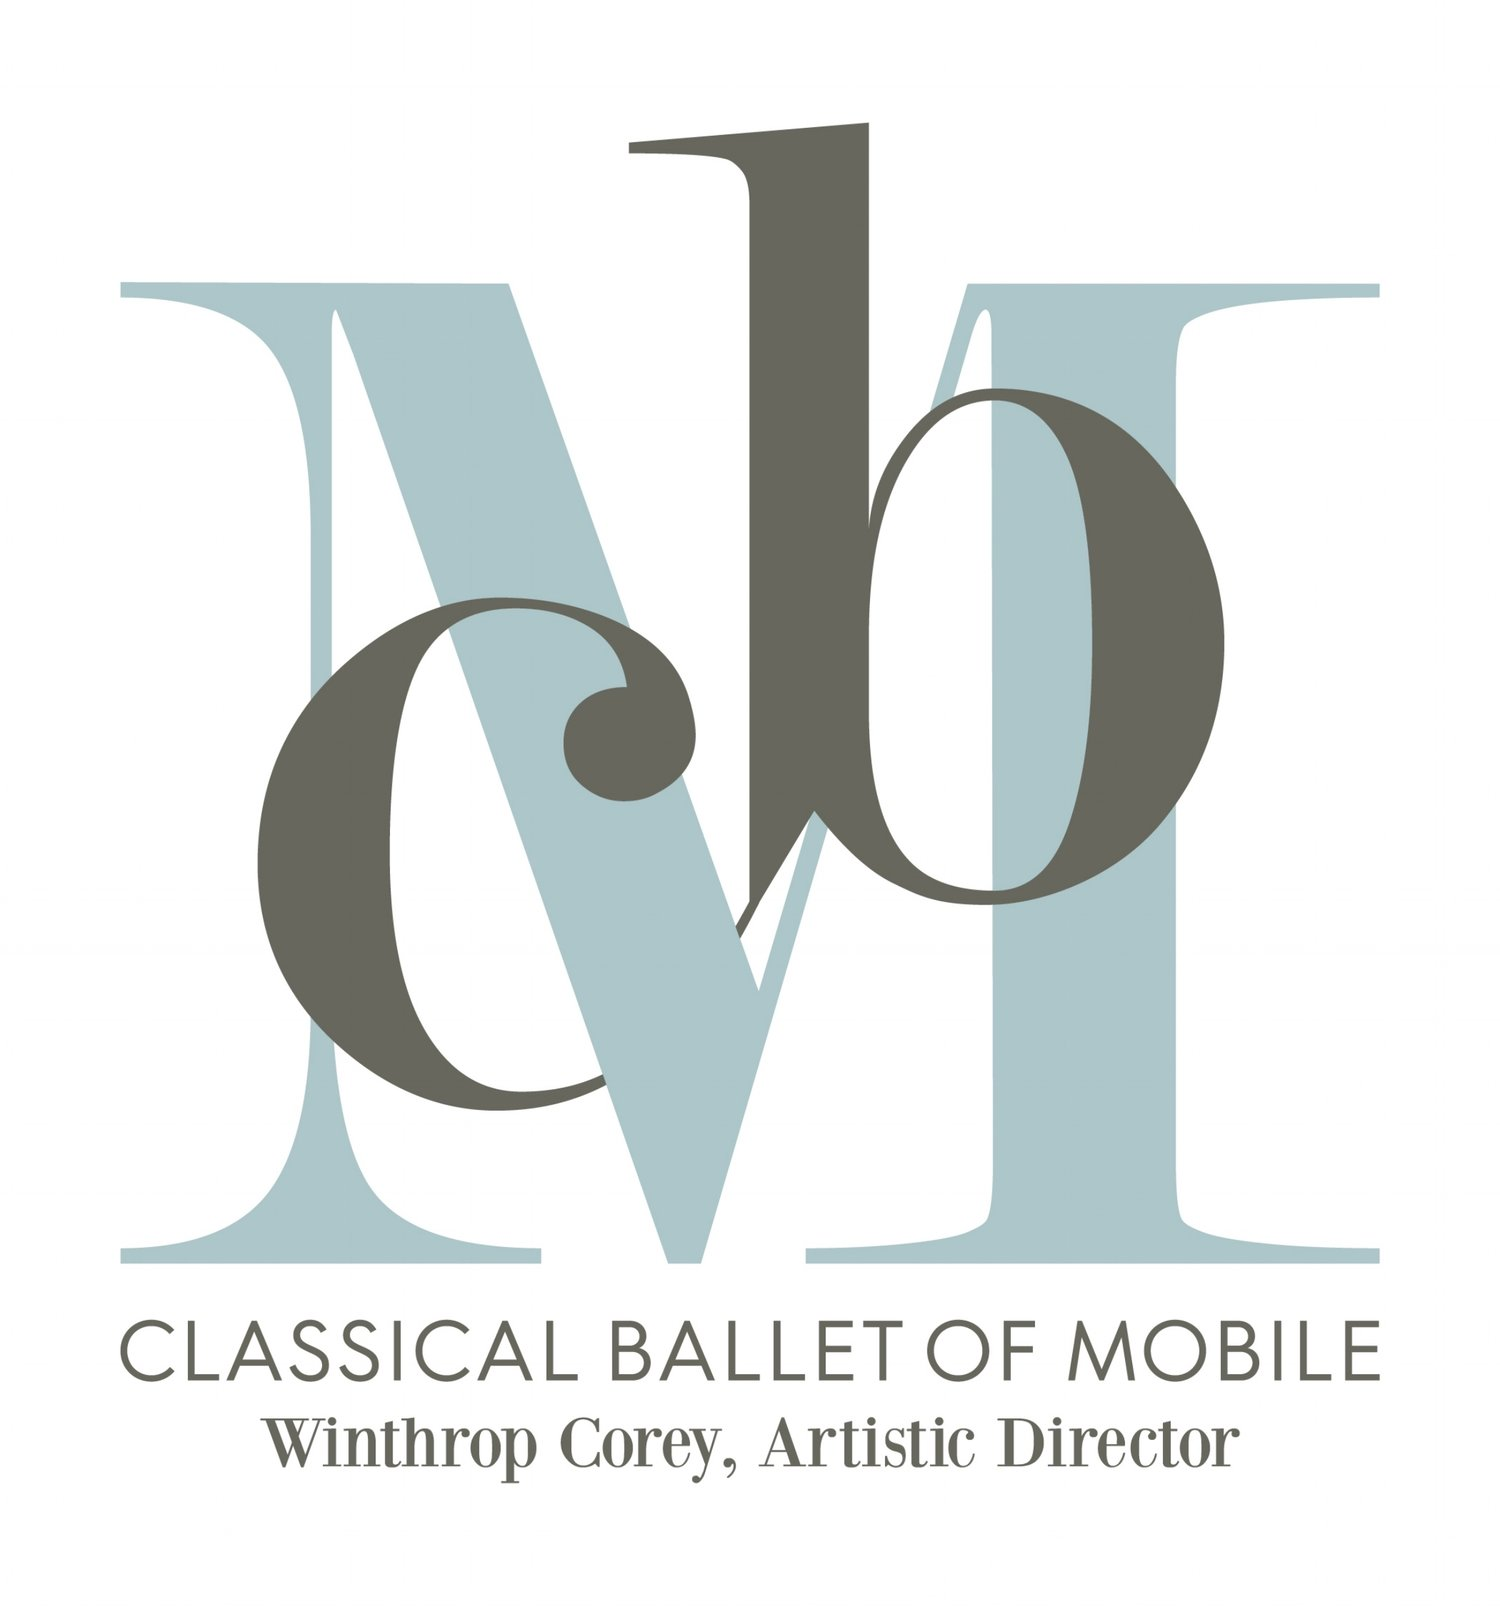 Classical Ballet of Mobile